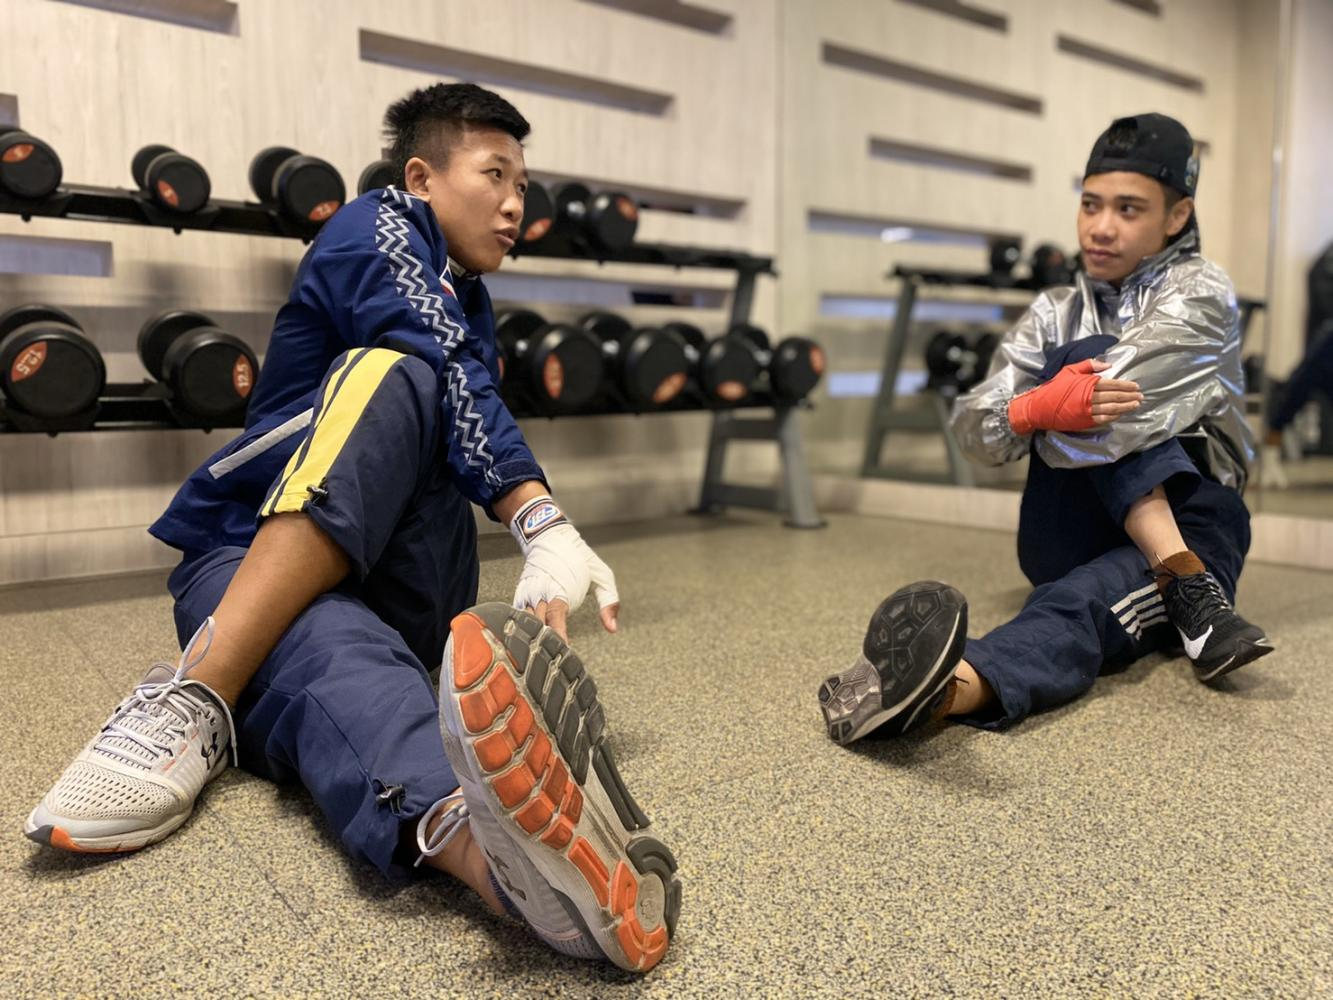 Boxers Sudaporn Seesondee, left, and Jutamas Jitpong train on Tuesday.